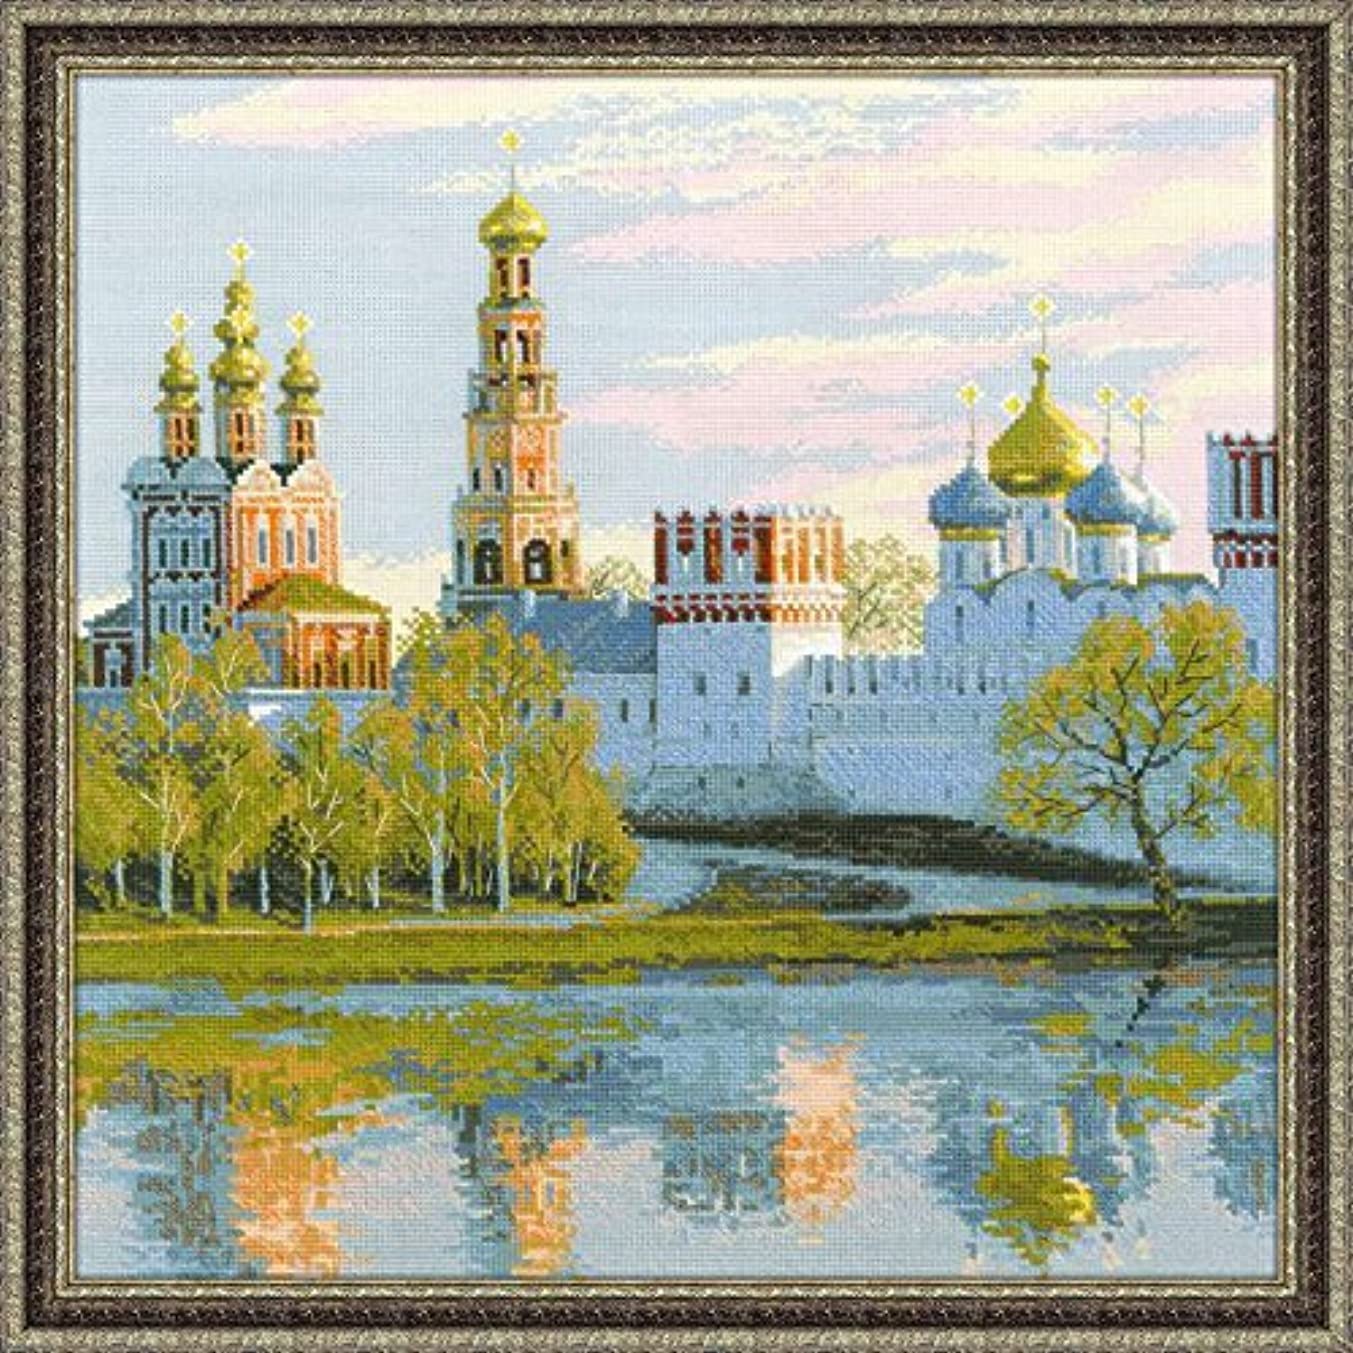 RIOLIS 1430 Novodevichy Convent, Moscow, Russia - Counted Cross Stitch Kit - 15.75